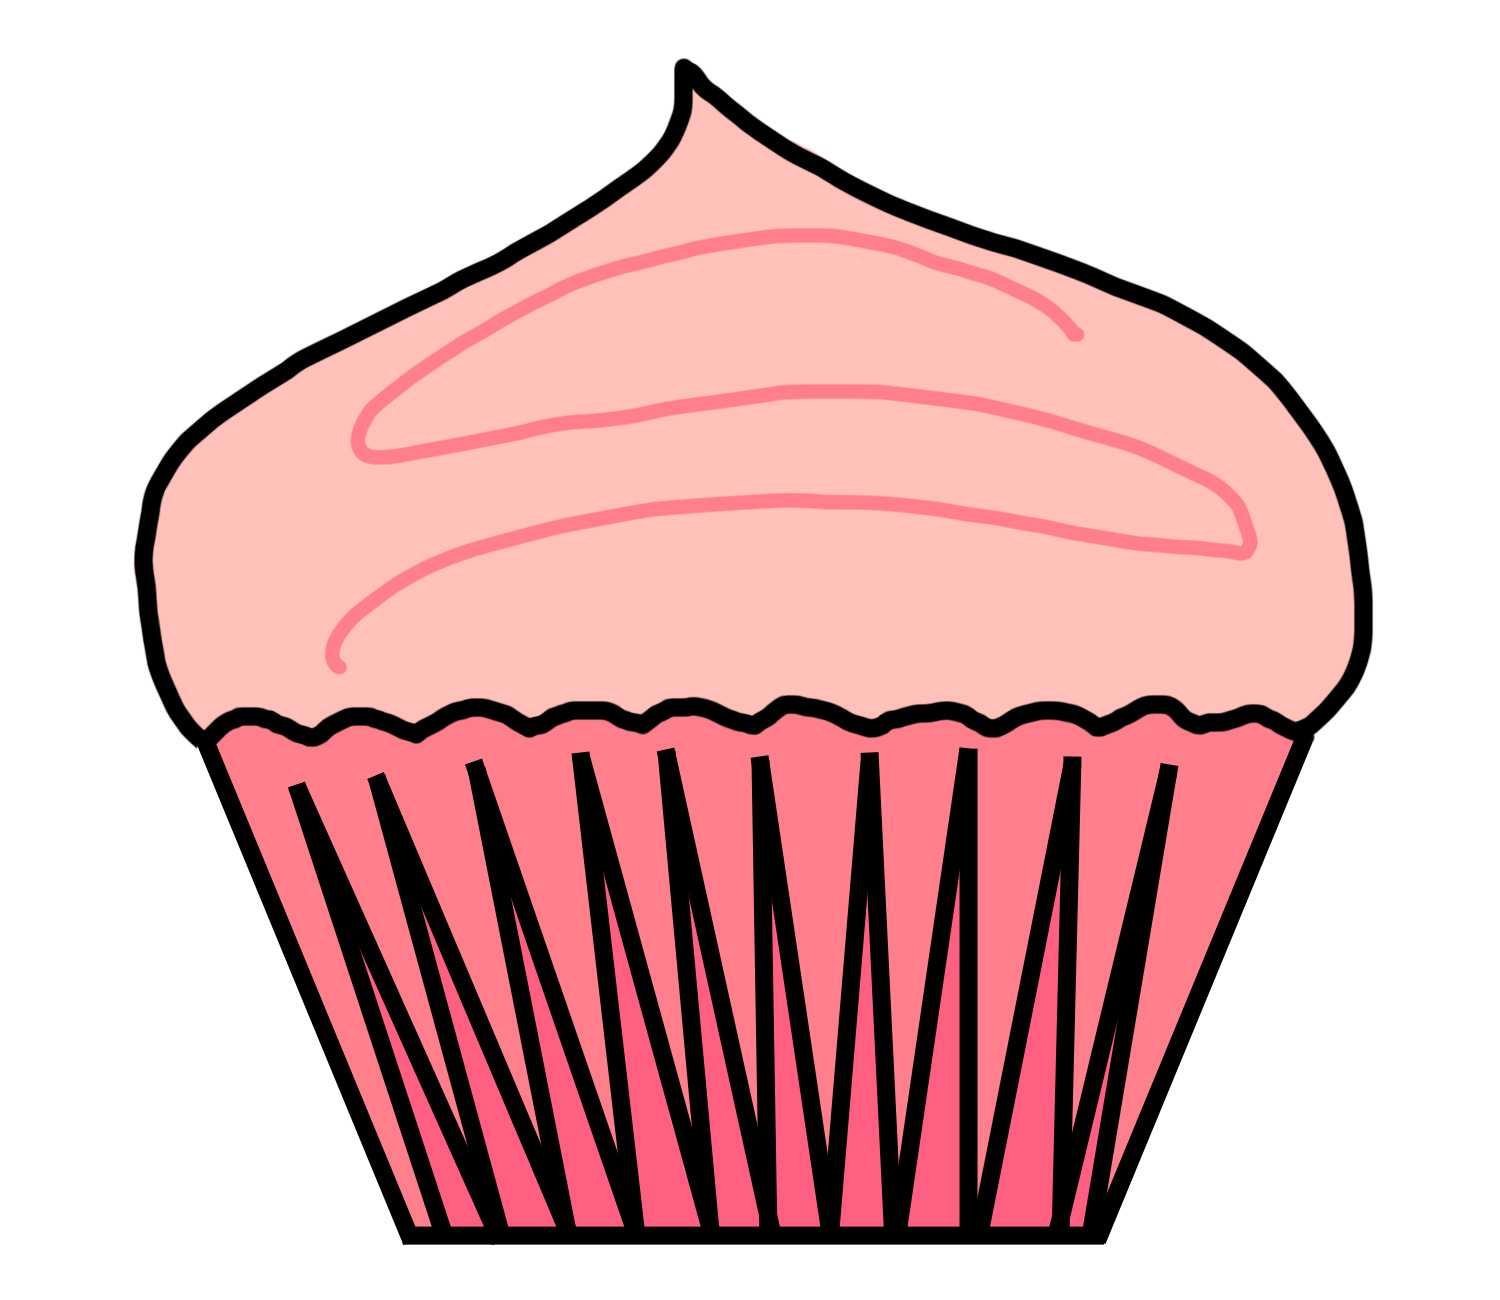 Cupcake Clip Art Outline | Clipart Panda - Free Clipart Images